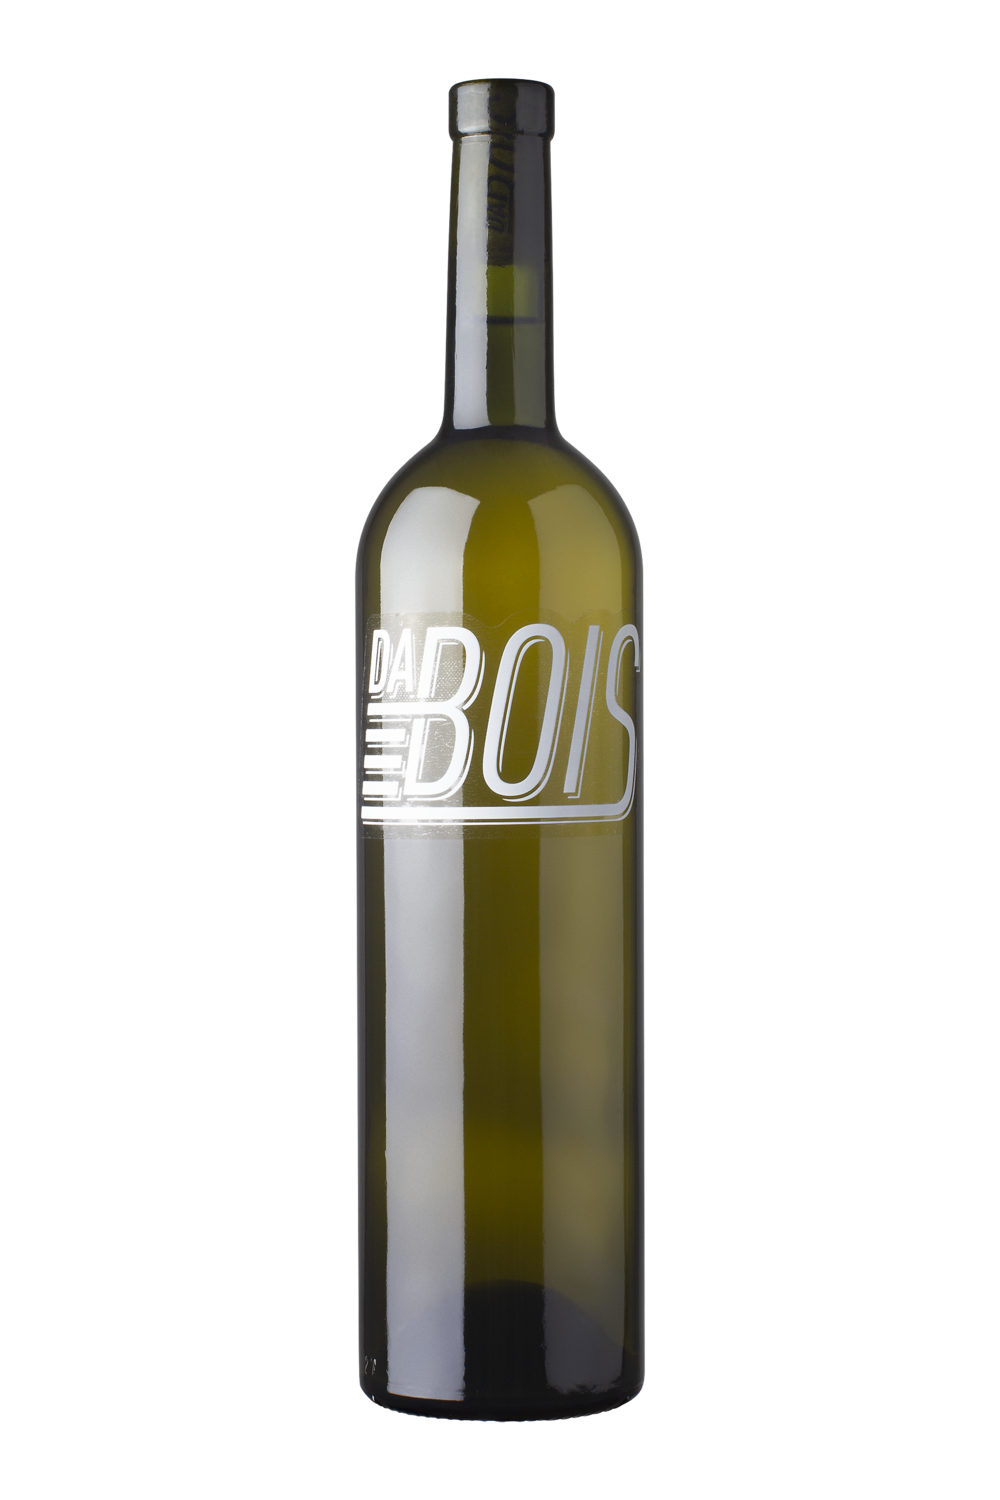 DaBois 'Vin Ambre' or Orange Vino  100% Semillon spending 6 weeks on skins in a funky egg fermenter. Pressed to barrel for a further 6 months of aging without any preservatives.